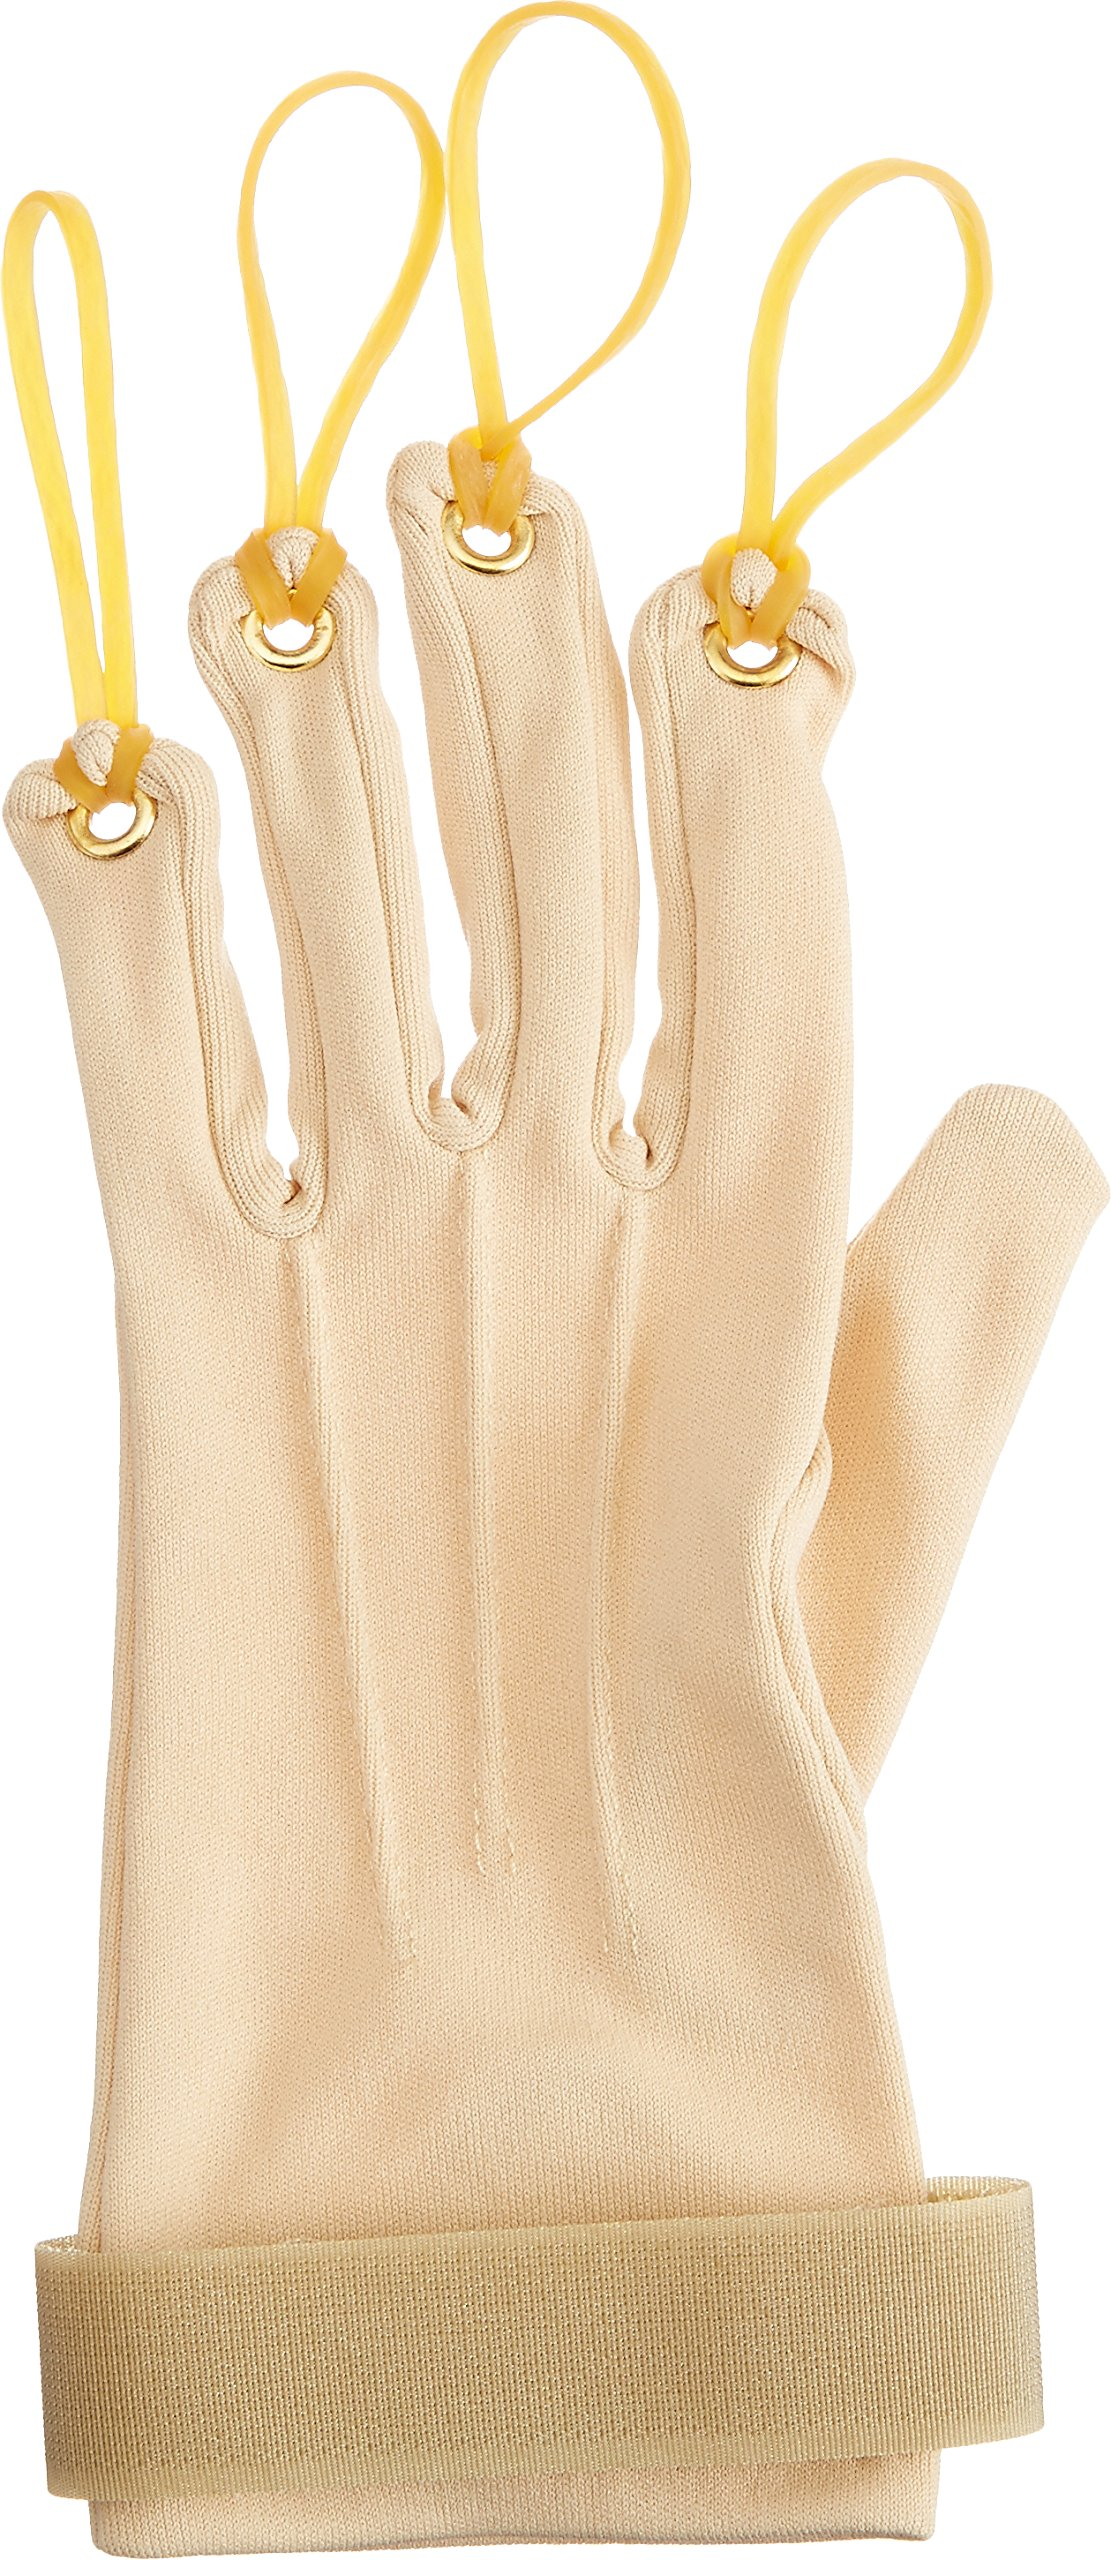 Sammons Preston Traction Exercise Glove, Hand and Finger Strengthening Glove for Joint Flexion, Hand Exerciser for Therapy, Recovery, and Rehabilitation, Left, Small/Medium